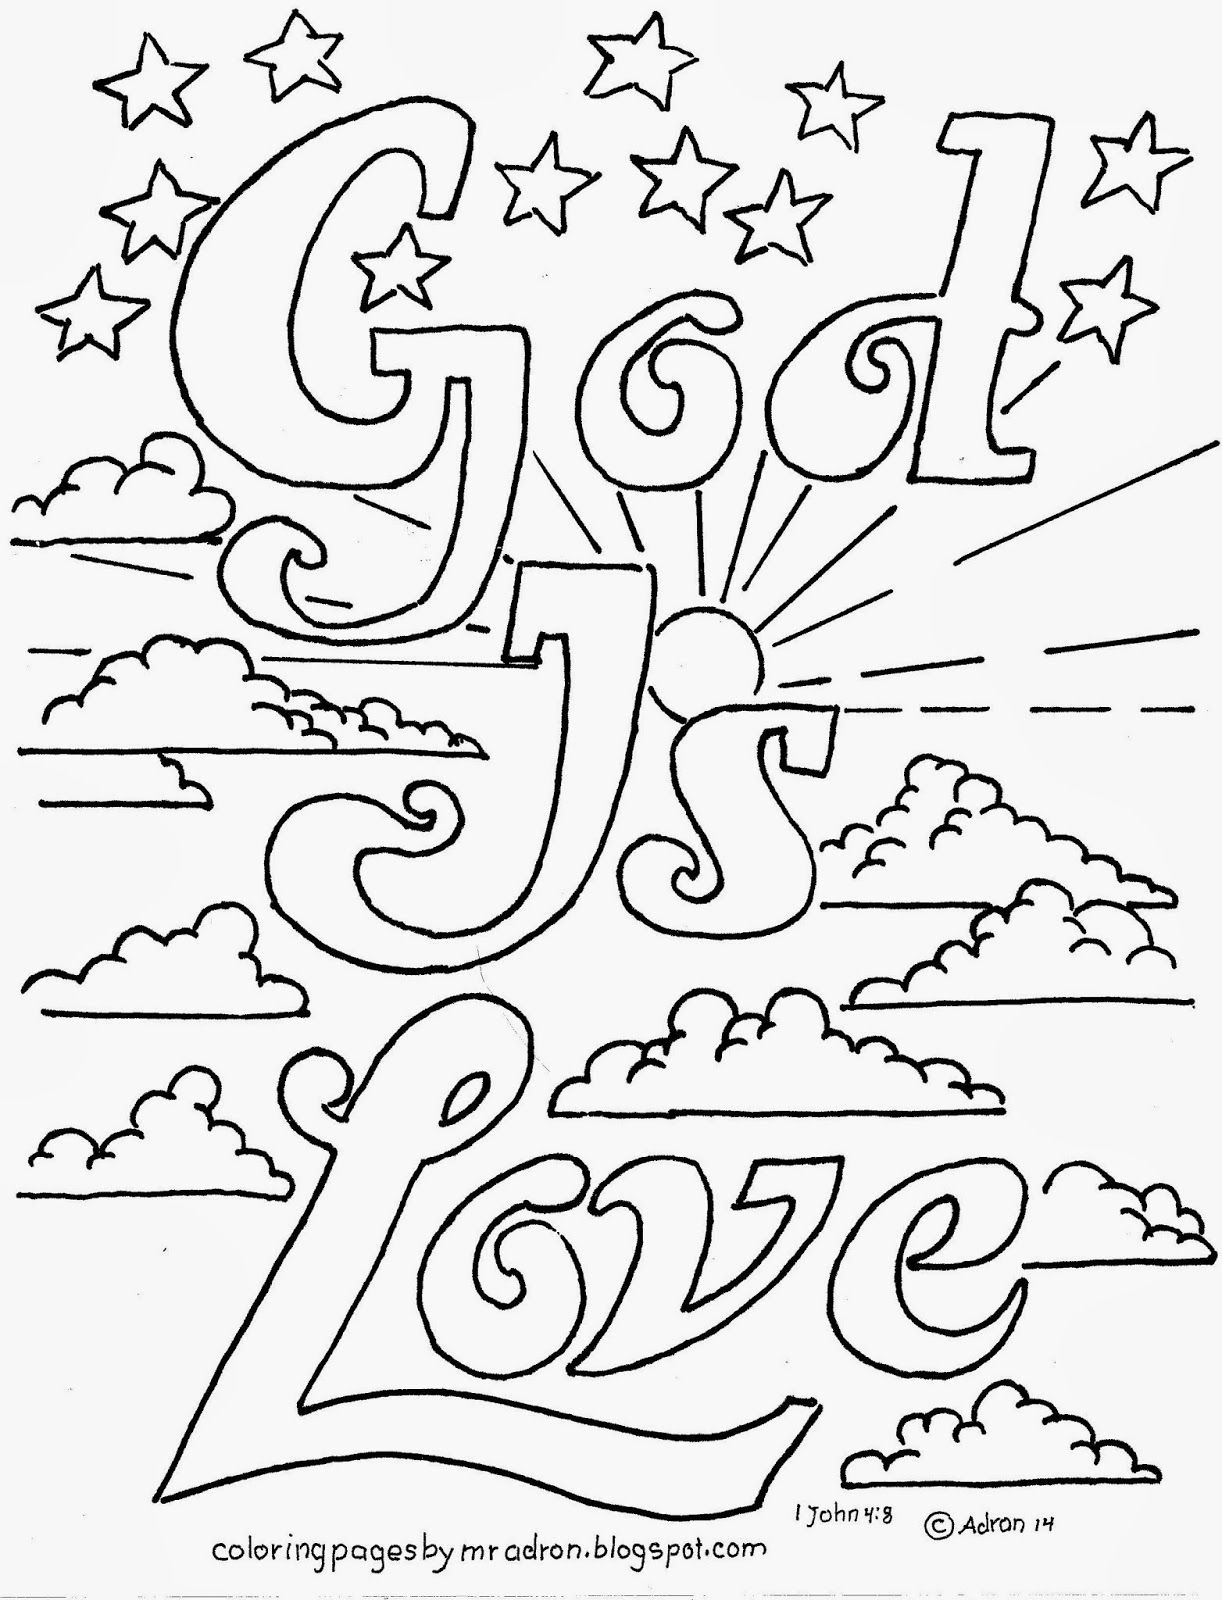 coloring pages for kids by mr adron god is love printable free kids